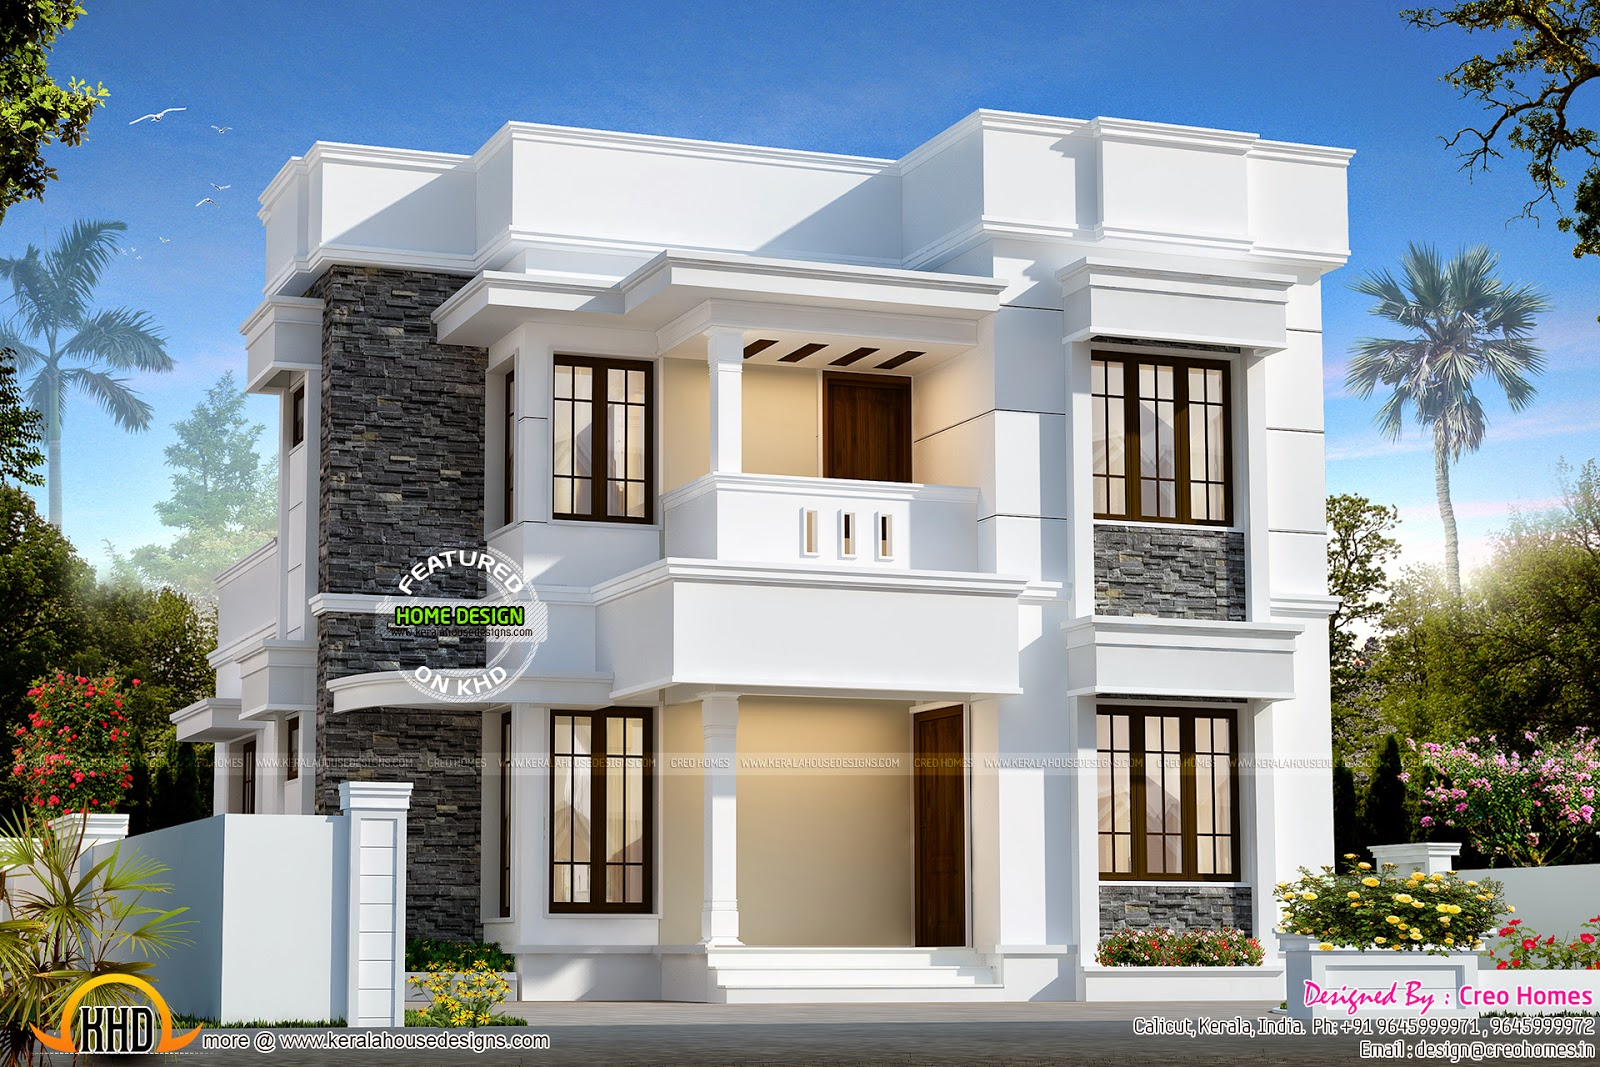 Nice and small double storied house kerala home design for Nice modern house plans